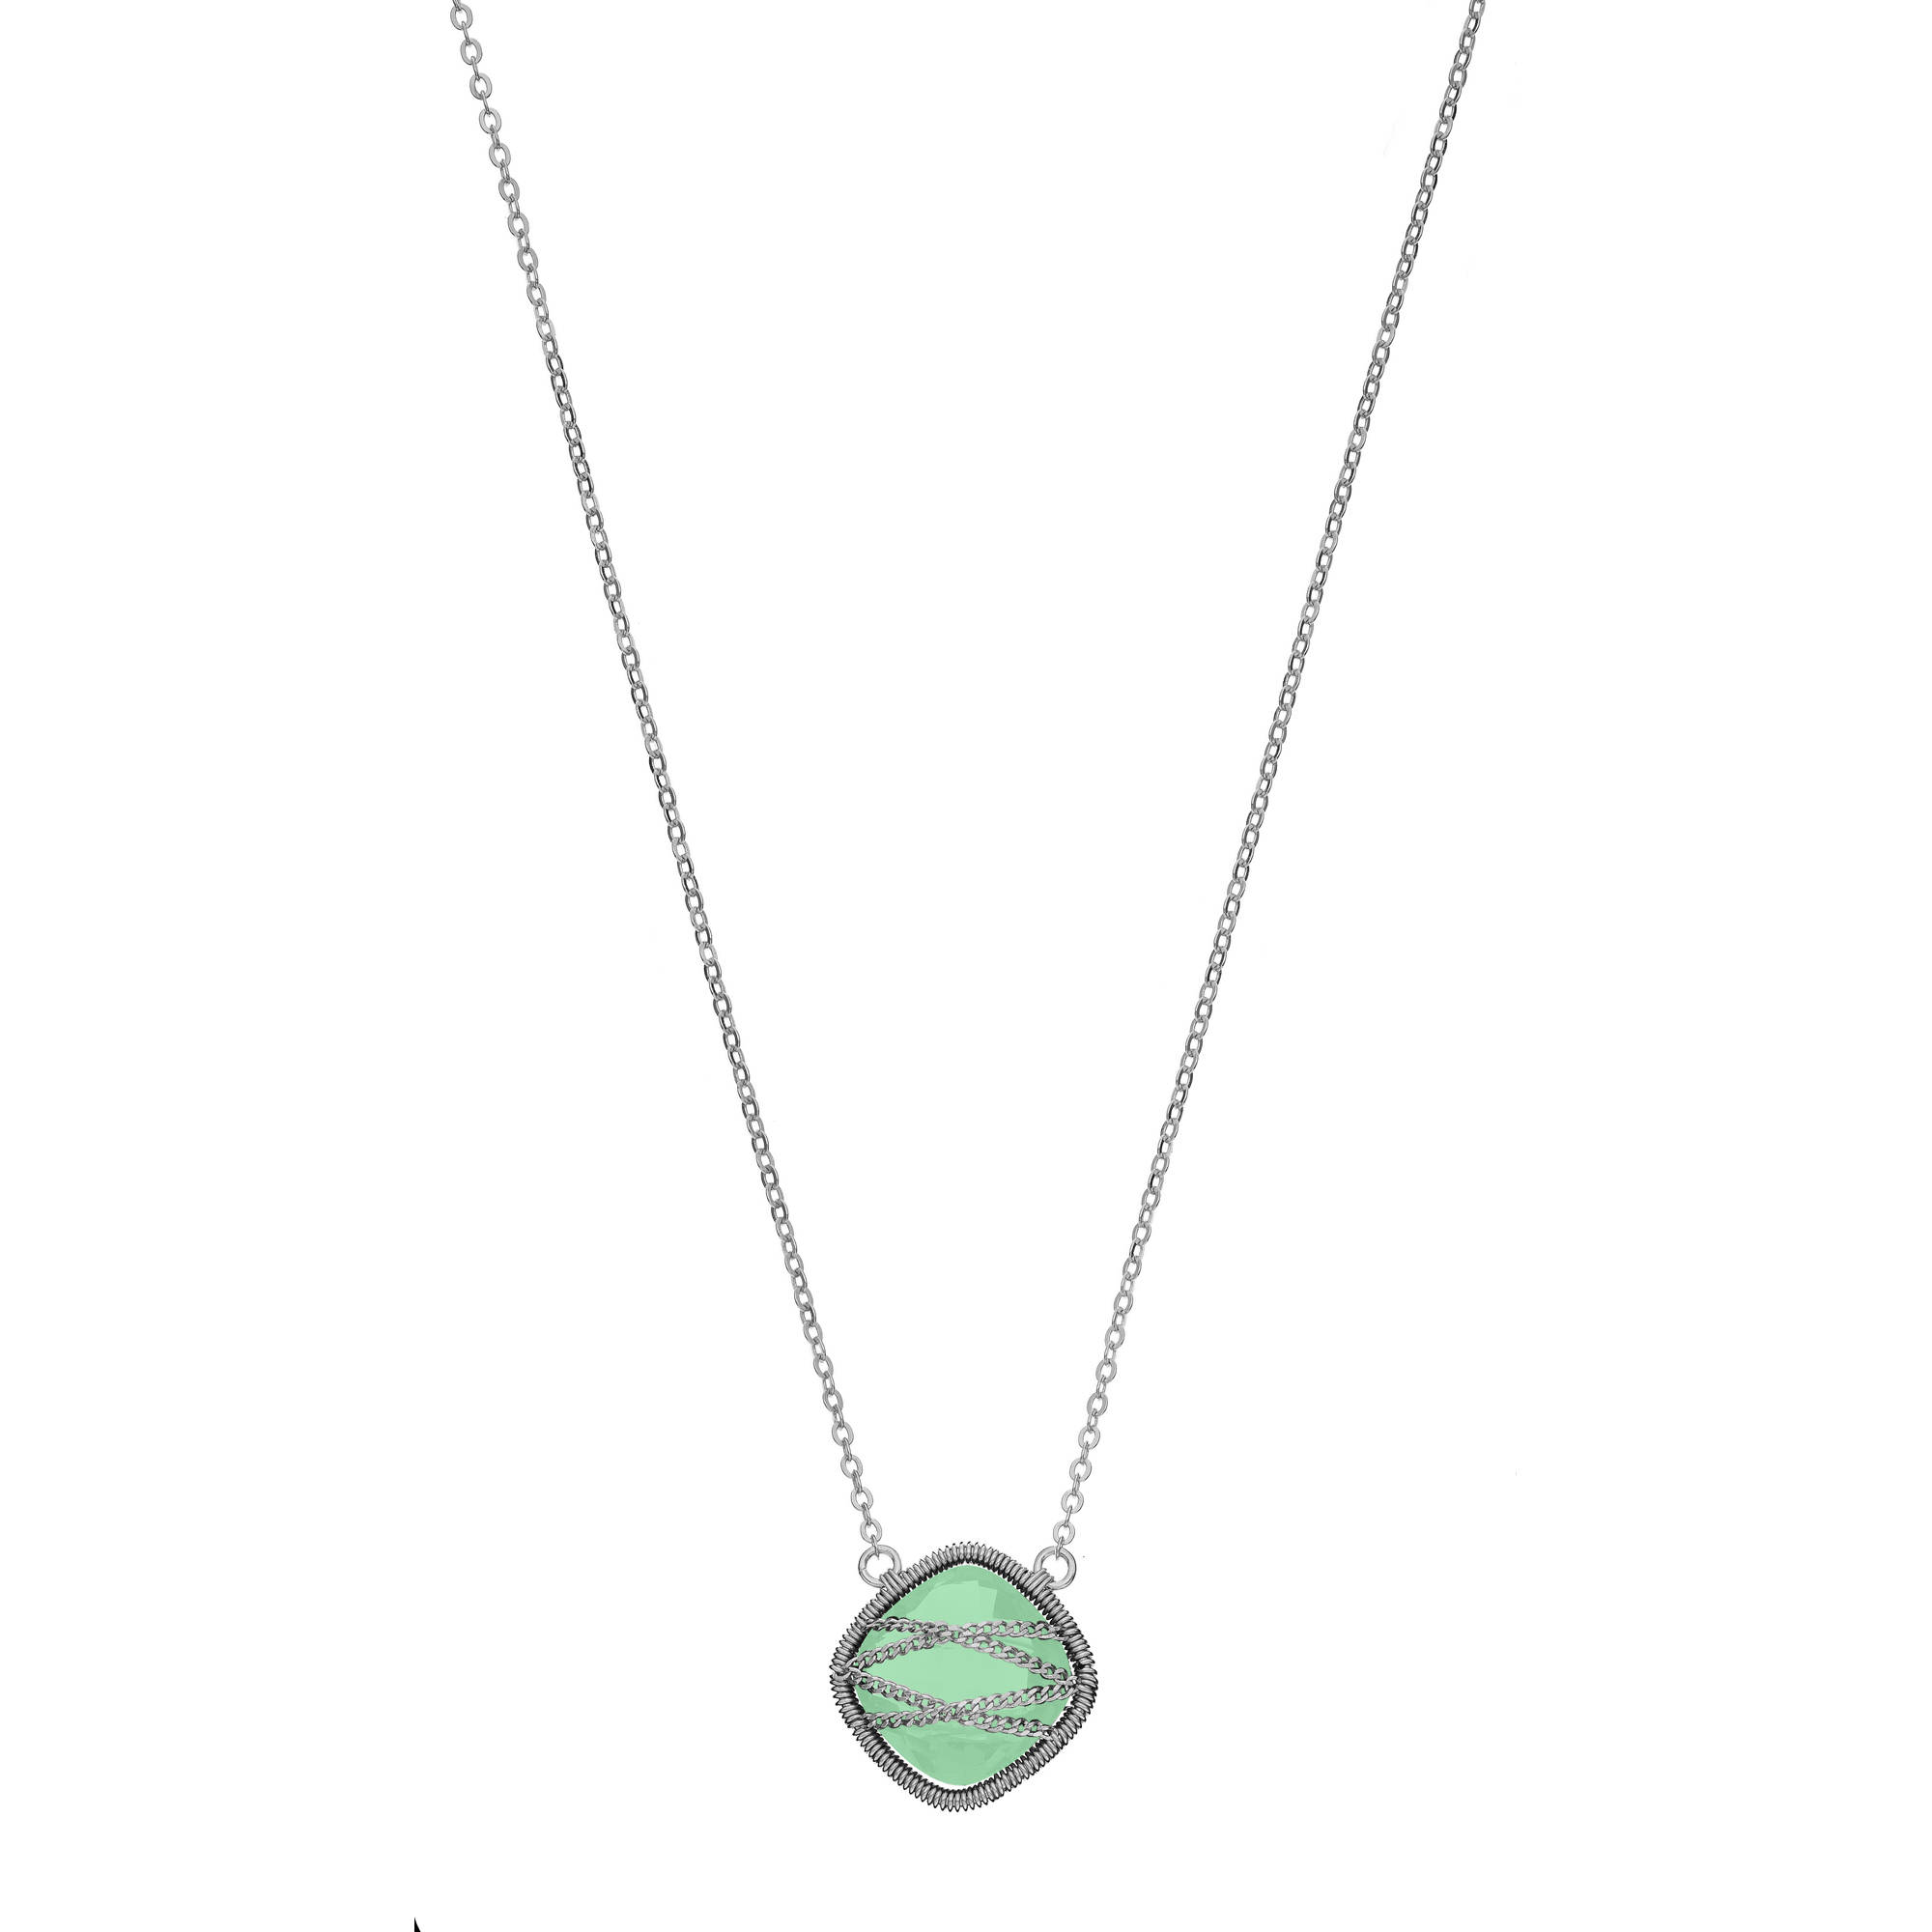 5th & Main Sterling Silver Hand-Wrapped Squared Chalcedony Stone Necklace by Generic